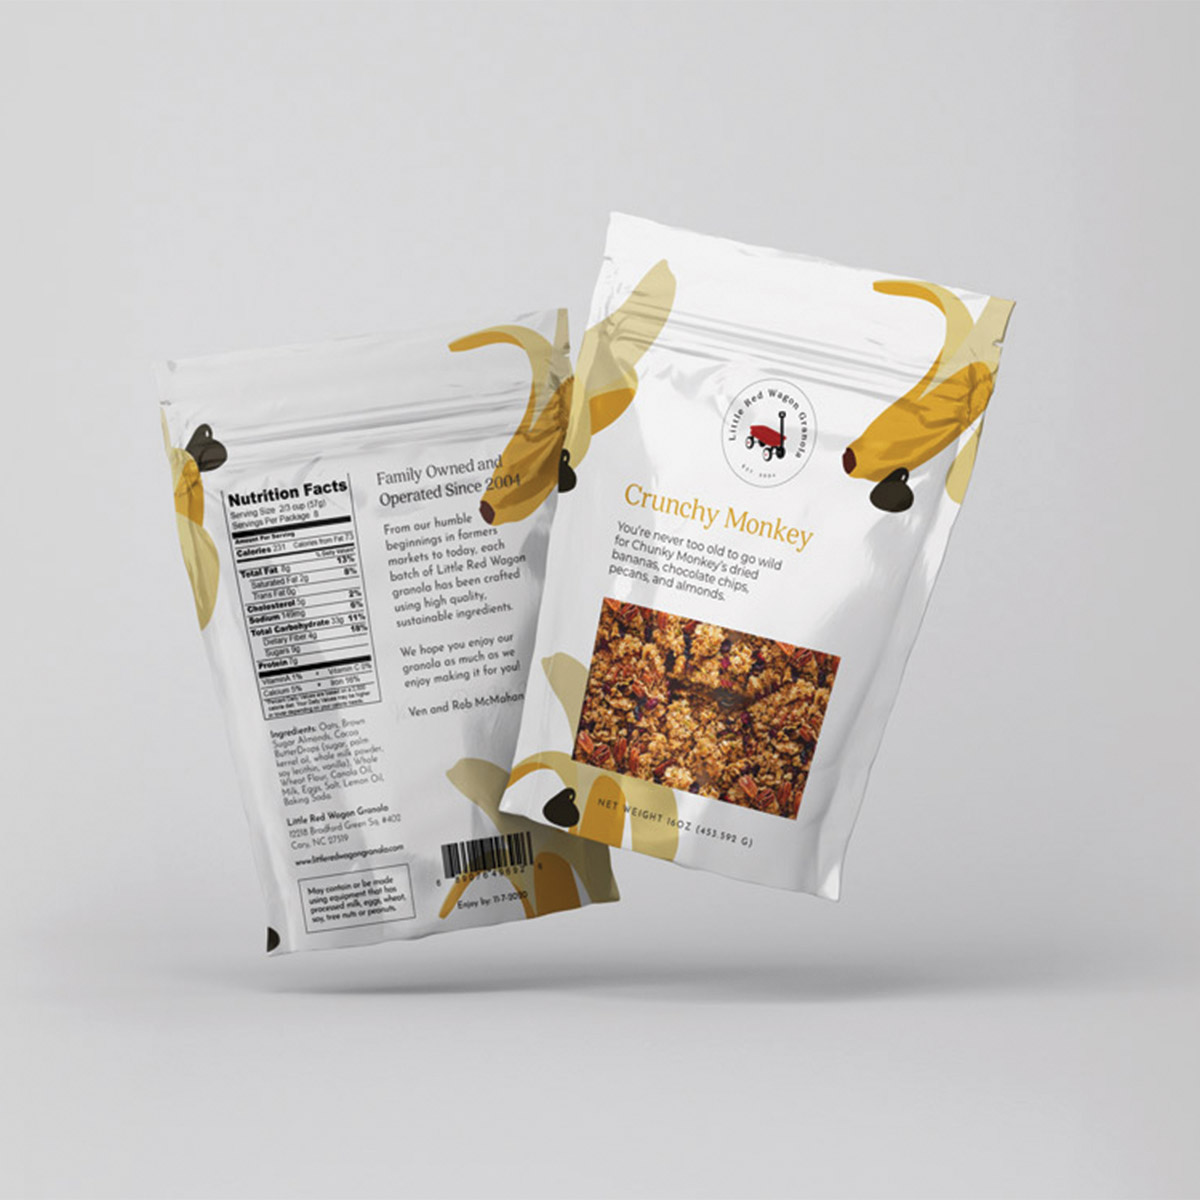 Little Red Wagon Granola Crunchy Monkey flavor; sustainable food packaging